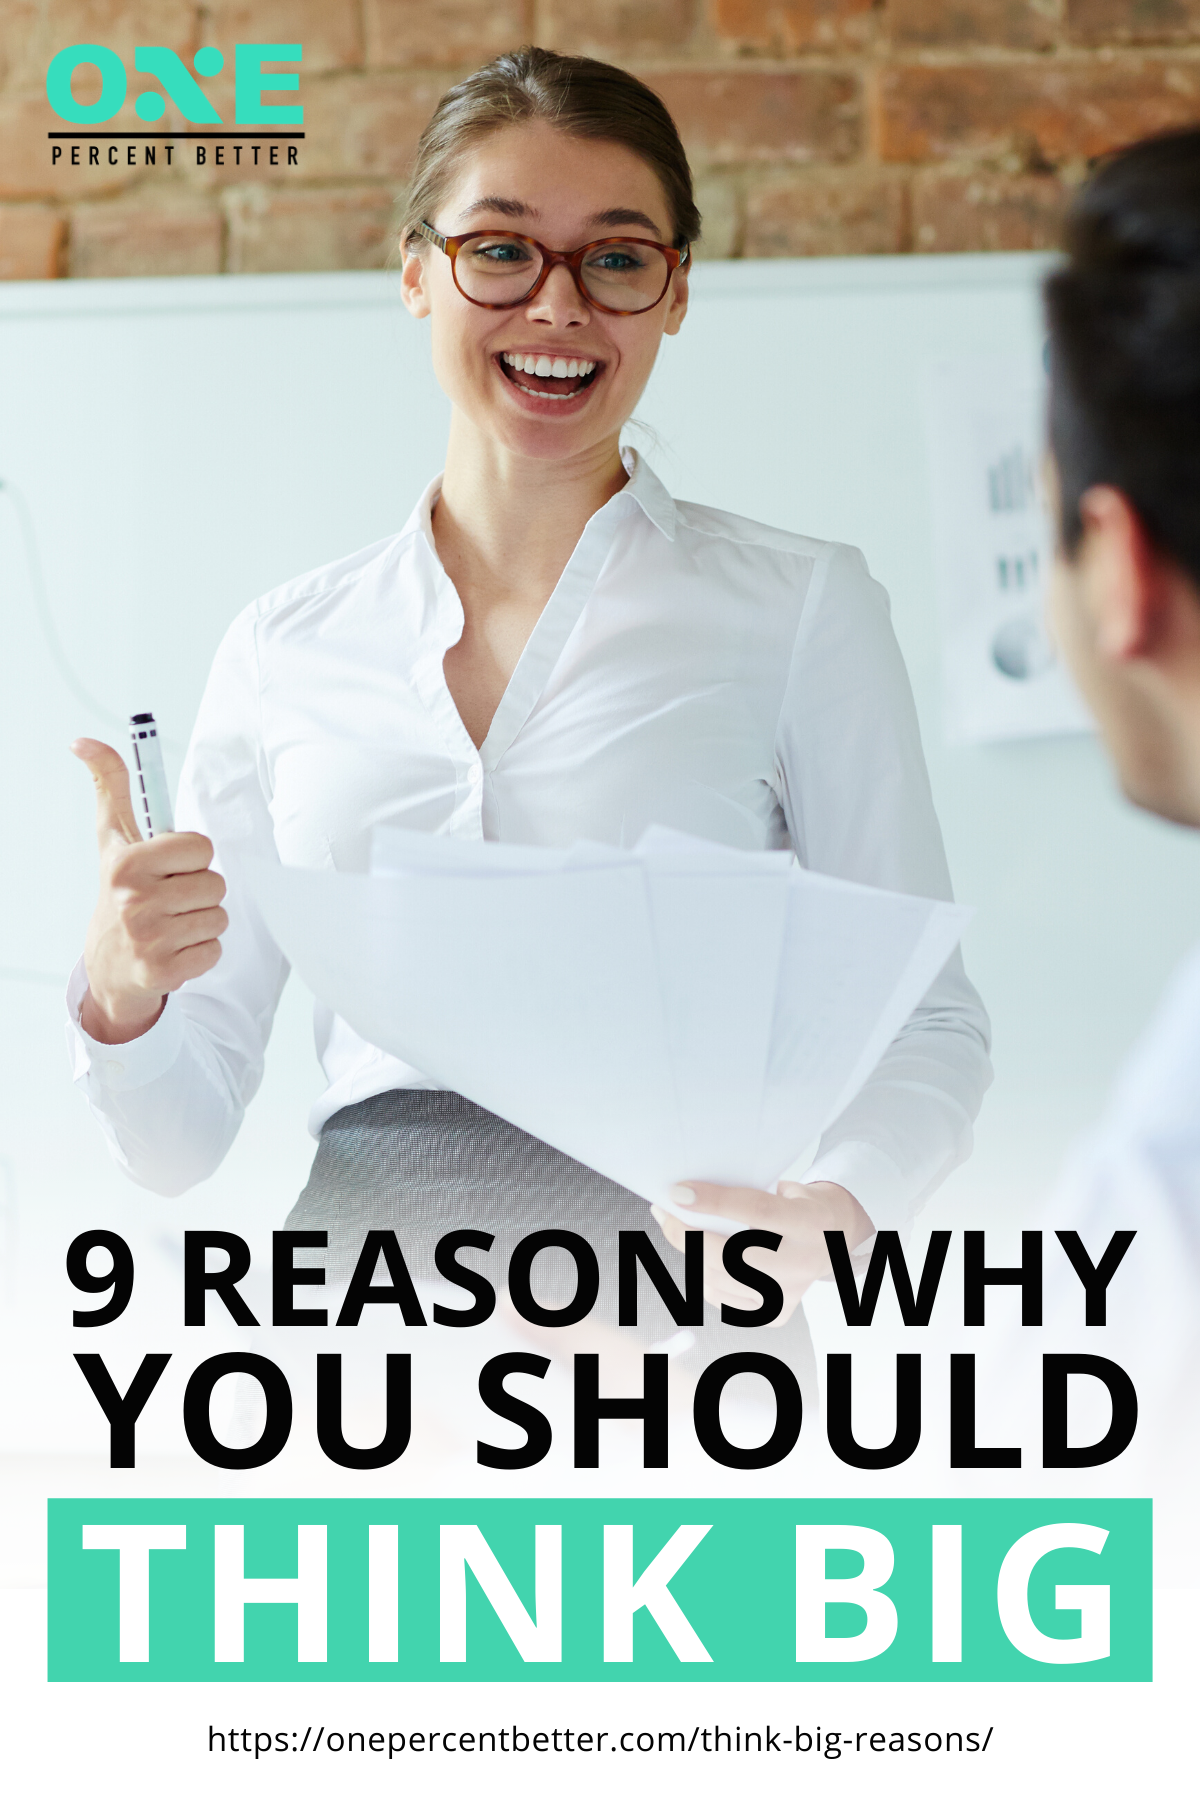 9 Reasons Why You Should Think Big | https://onepercentbetter.com/think-big-reasons/